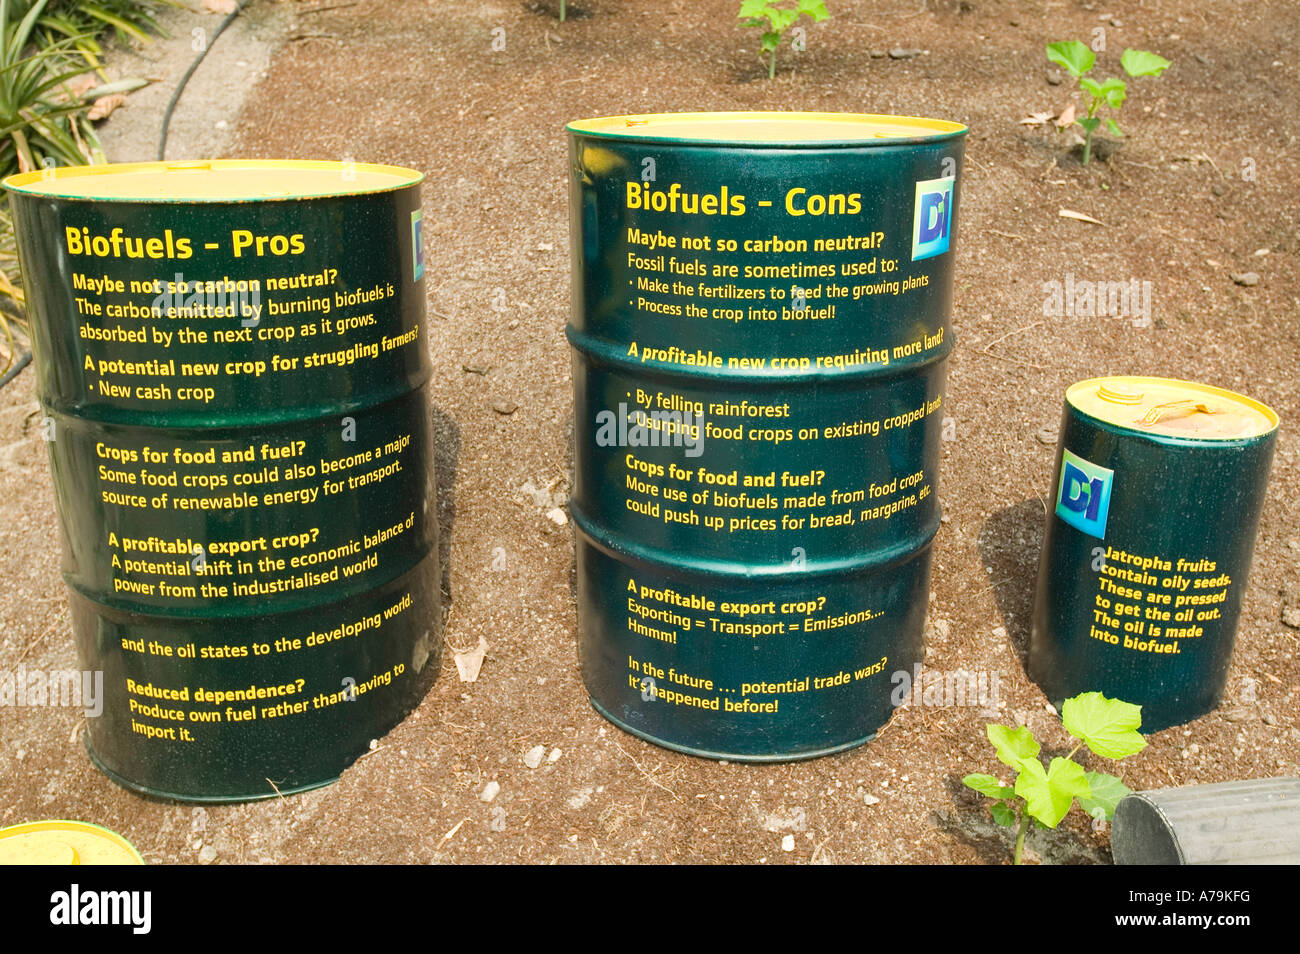 Biofuels Pros And Cons >> Biofuel Pros And Cons Display At The Eden Project Cornwall